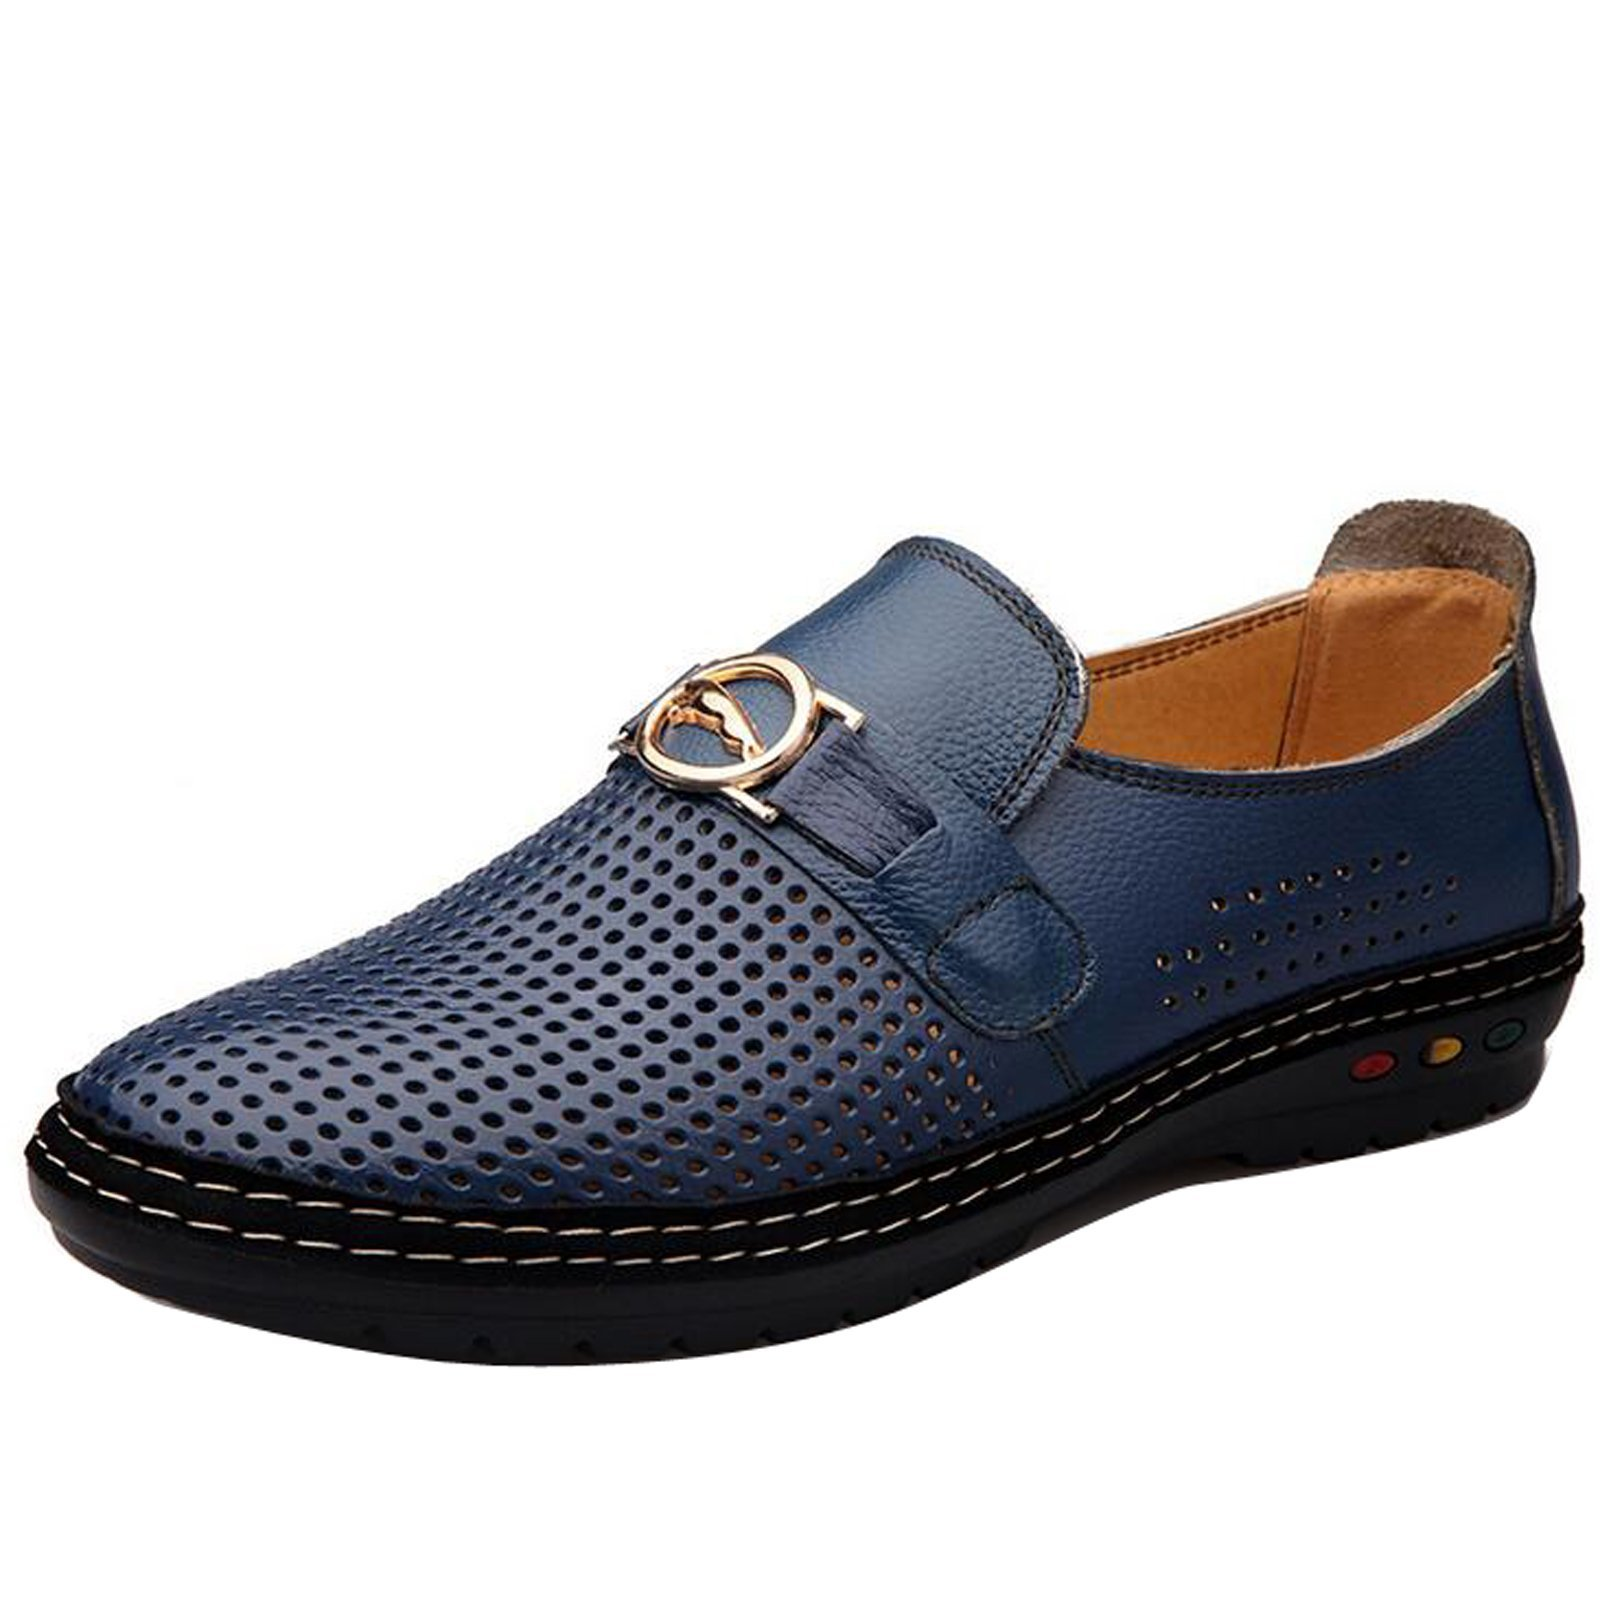 Gaorui Mens Hollow Out Business Dress Formal Leather Shoe Summer Casual Loafers Sandals